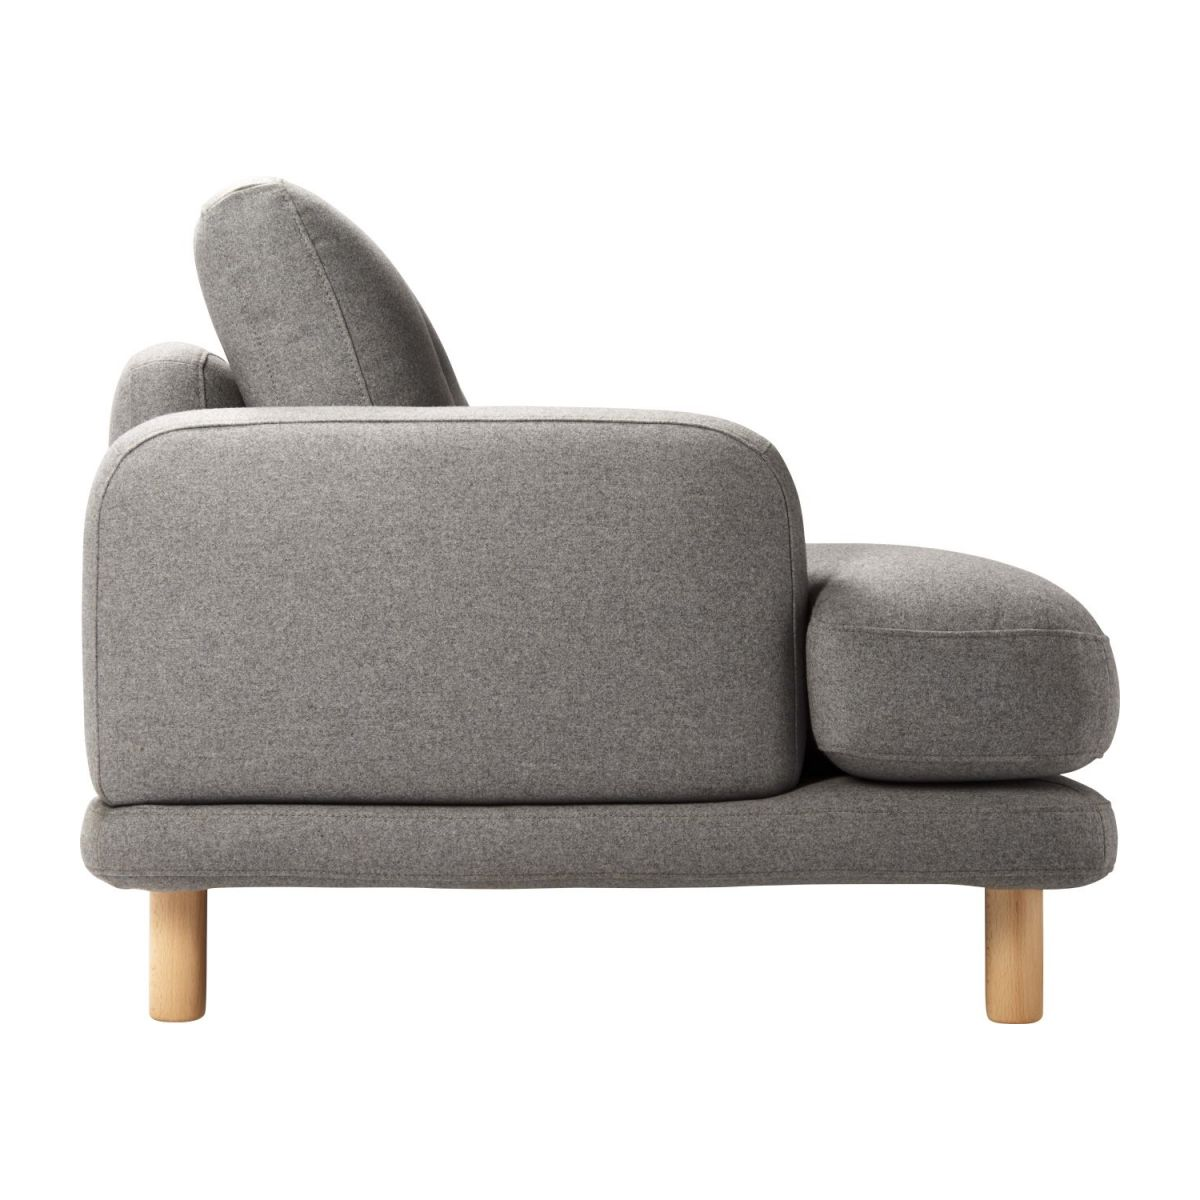 Sofaland Spain Land 3 Seater Sofa In Wool Felt